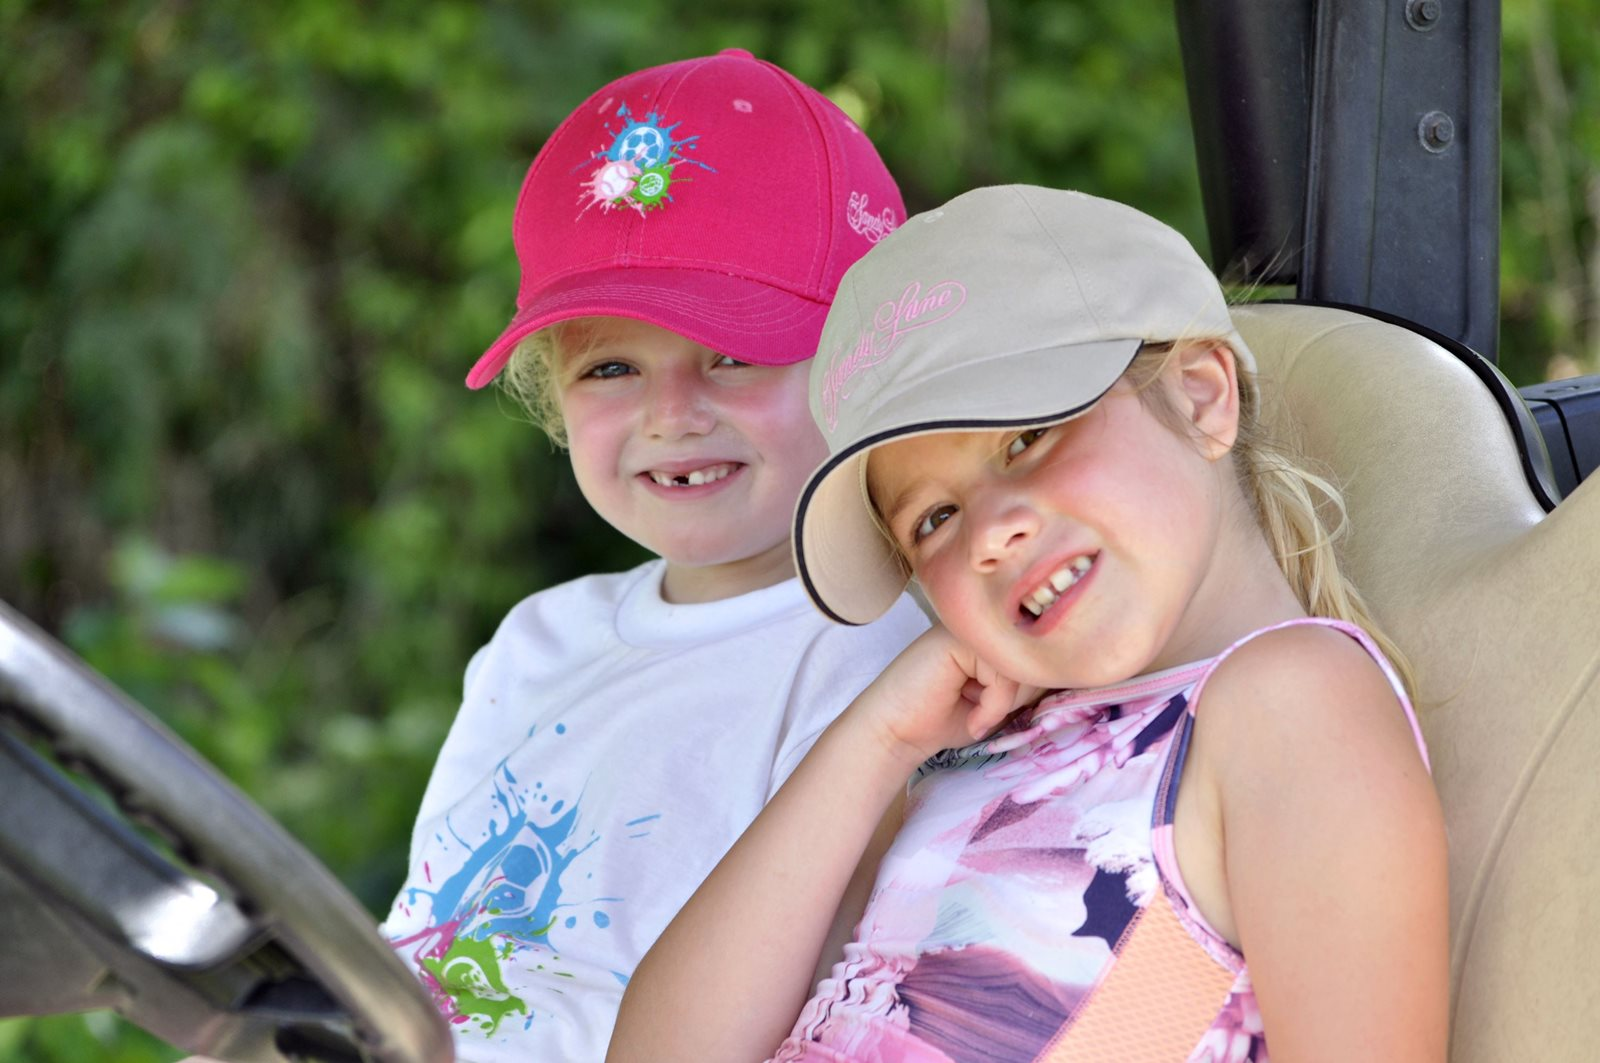 Two kids sitting in golf cart